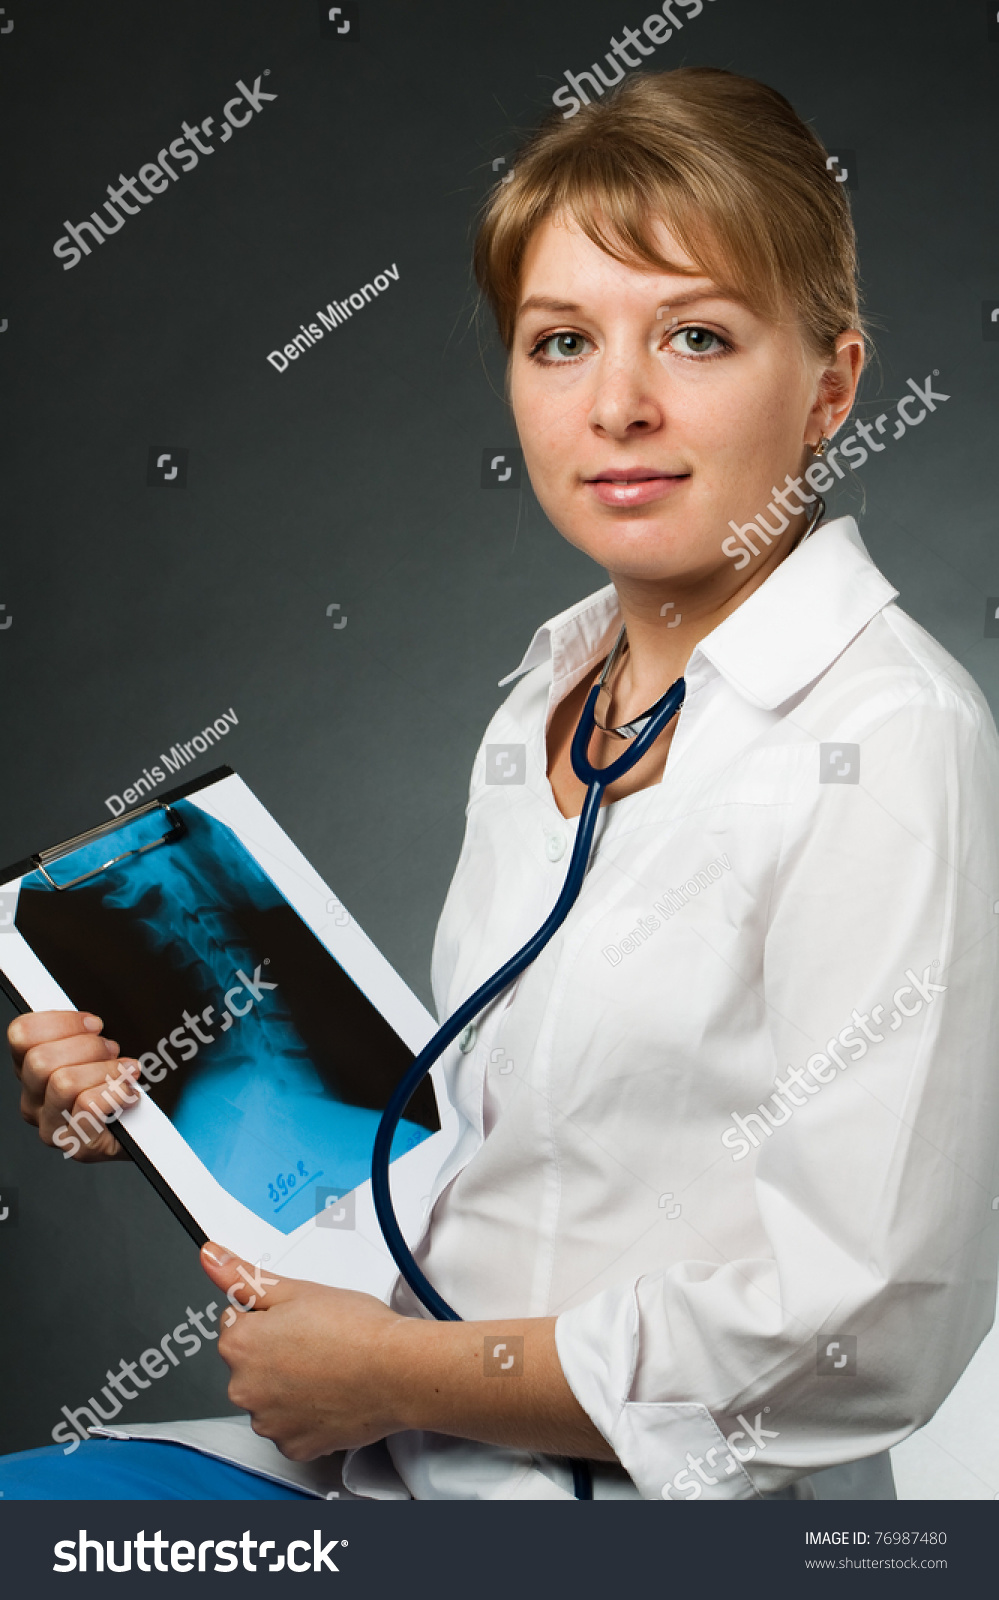 Portrait Doctor Medical Gown Considering Xray Stock Photo (Royalty ...